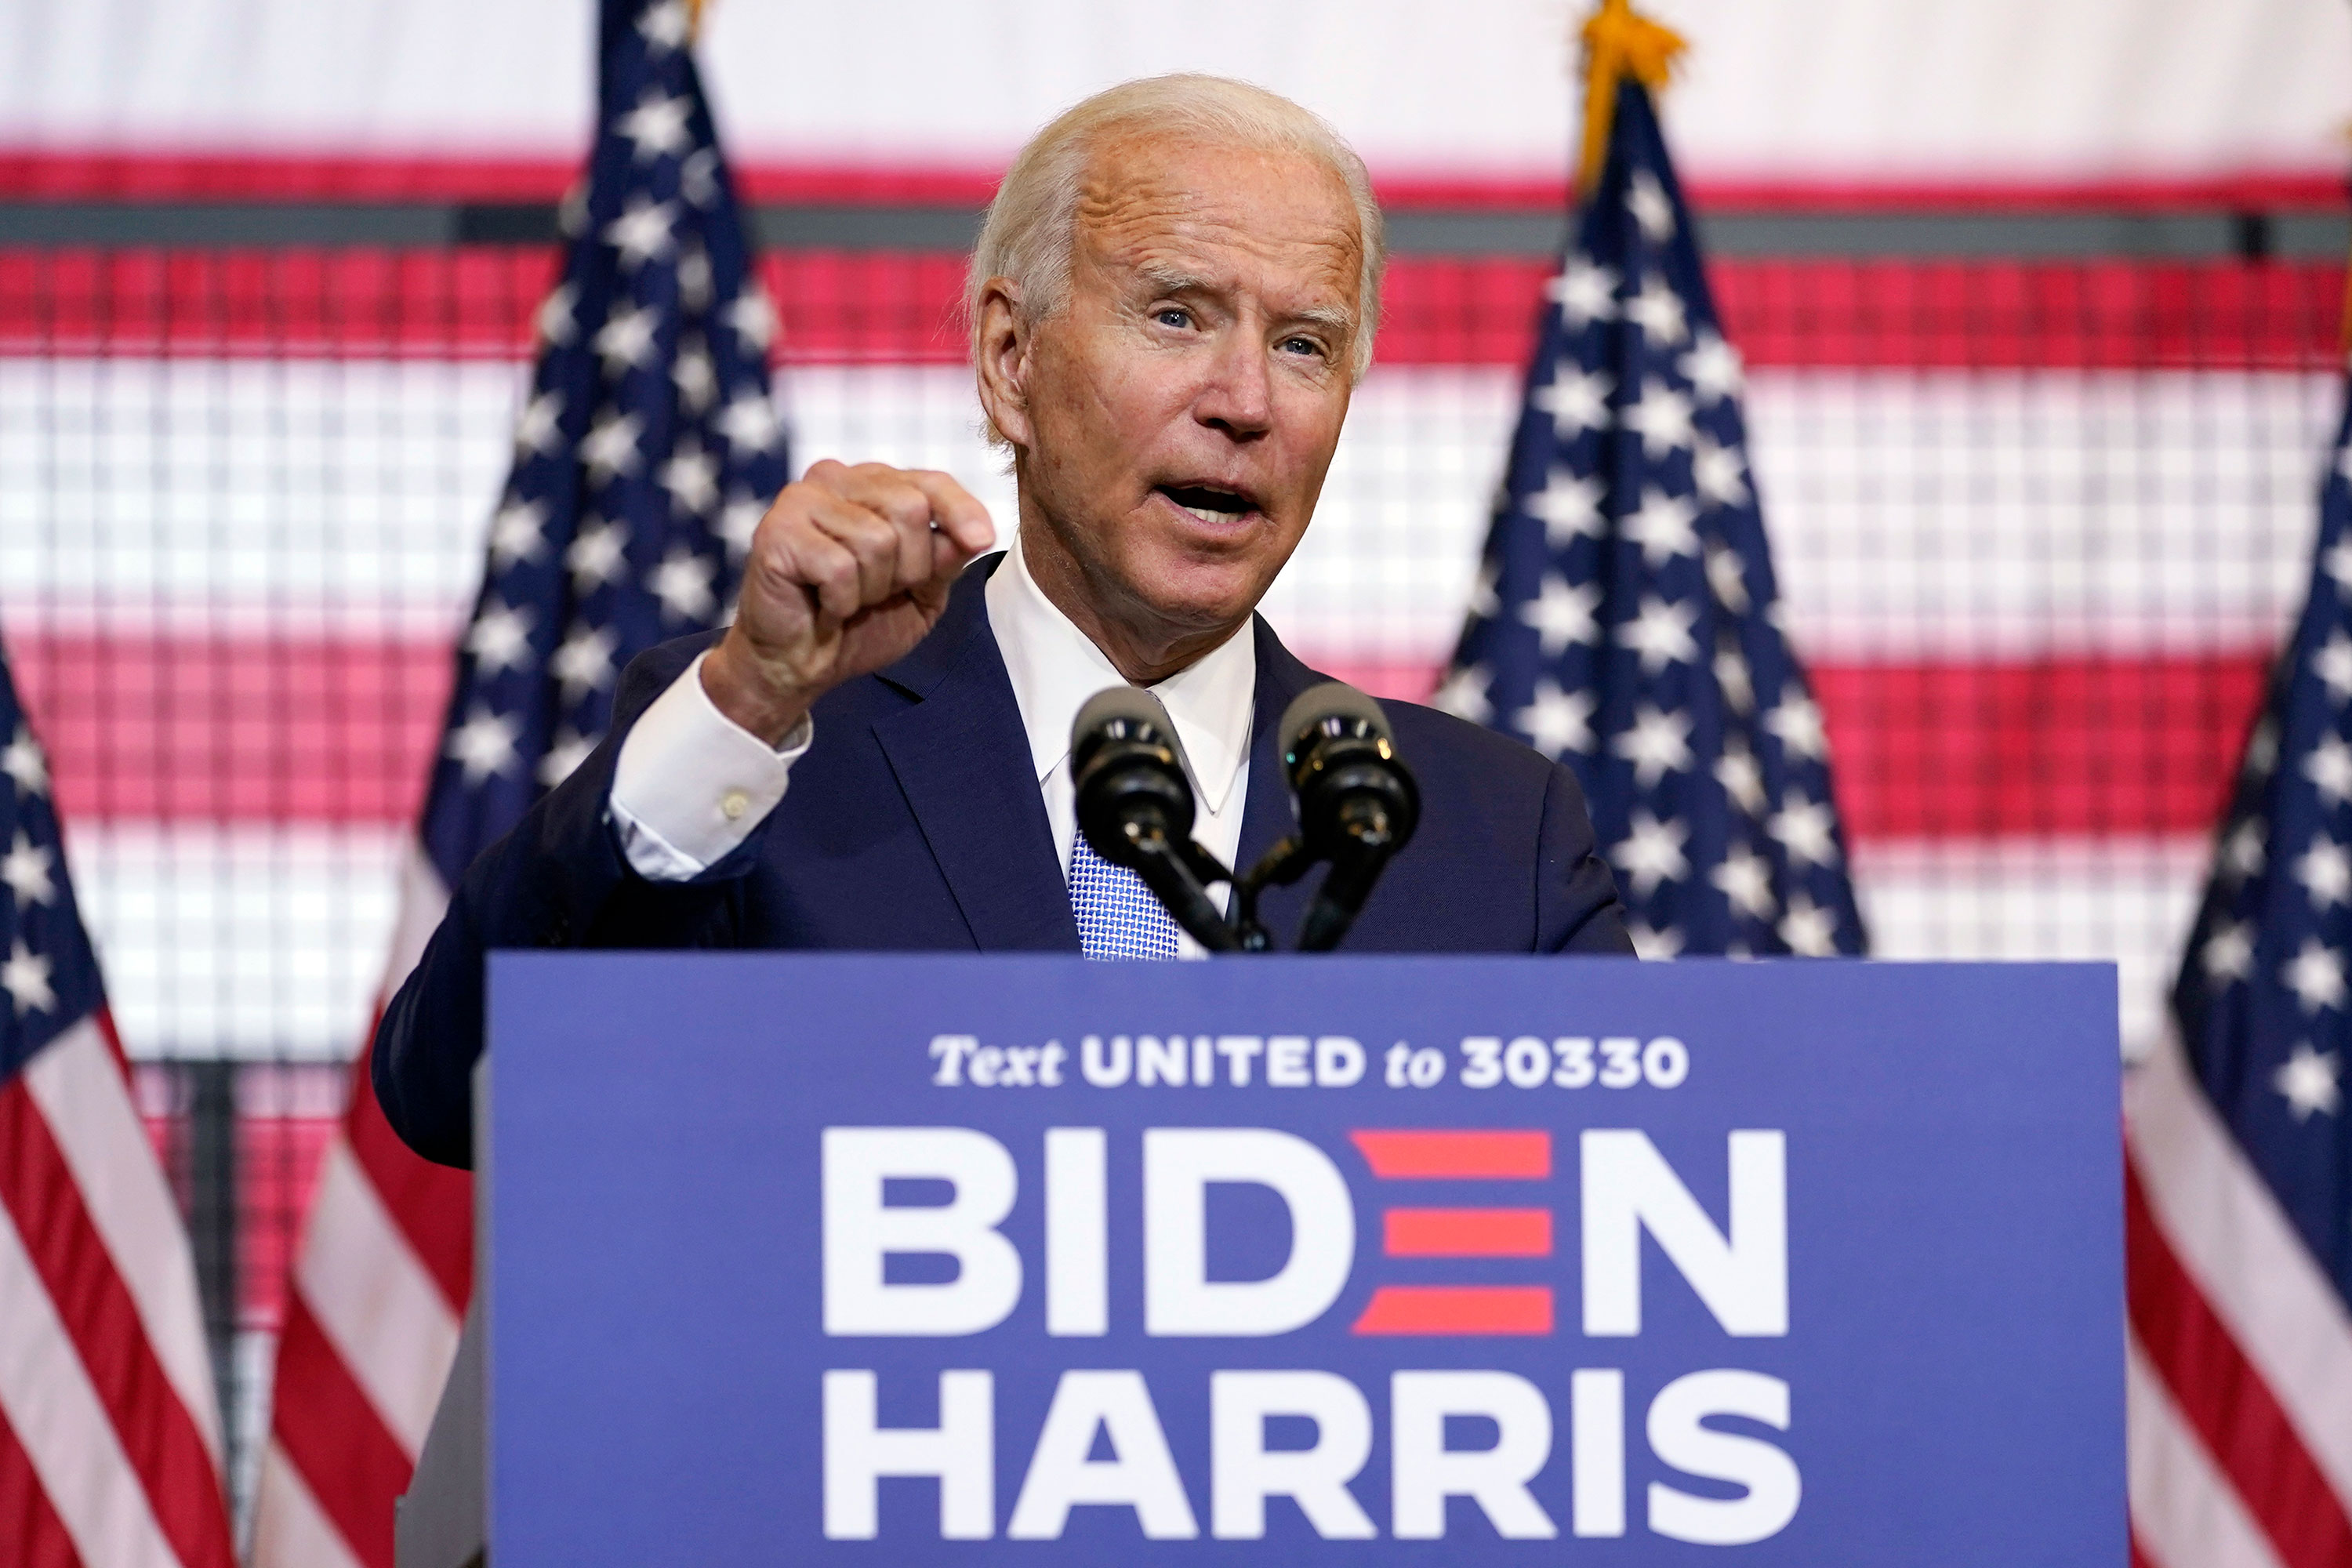 Democratic presidential candidate Joe Biden speaks at campaign event on August, 31 in Pittsburgh, Pennsylvania.